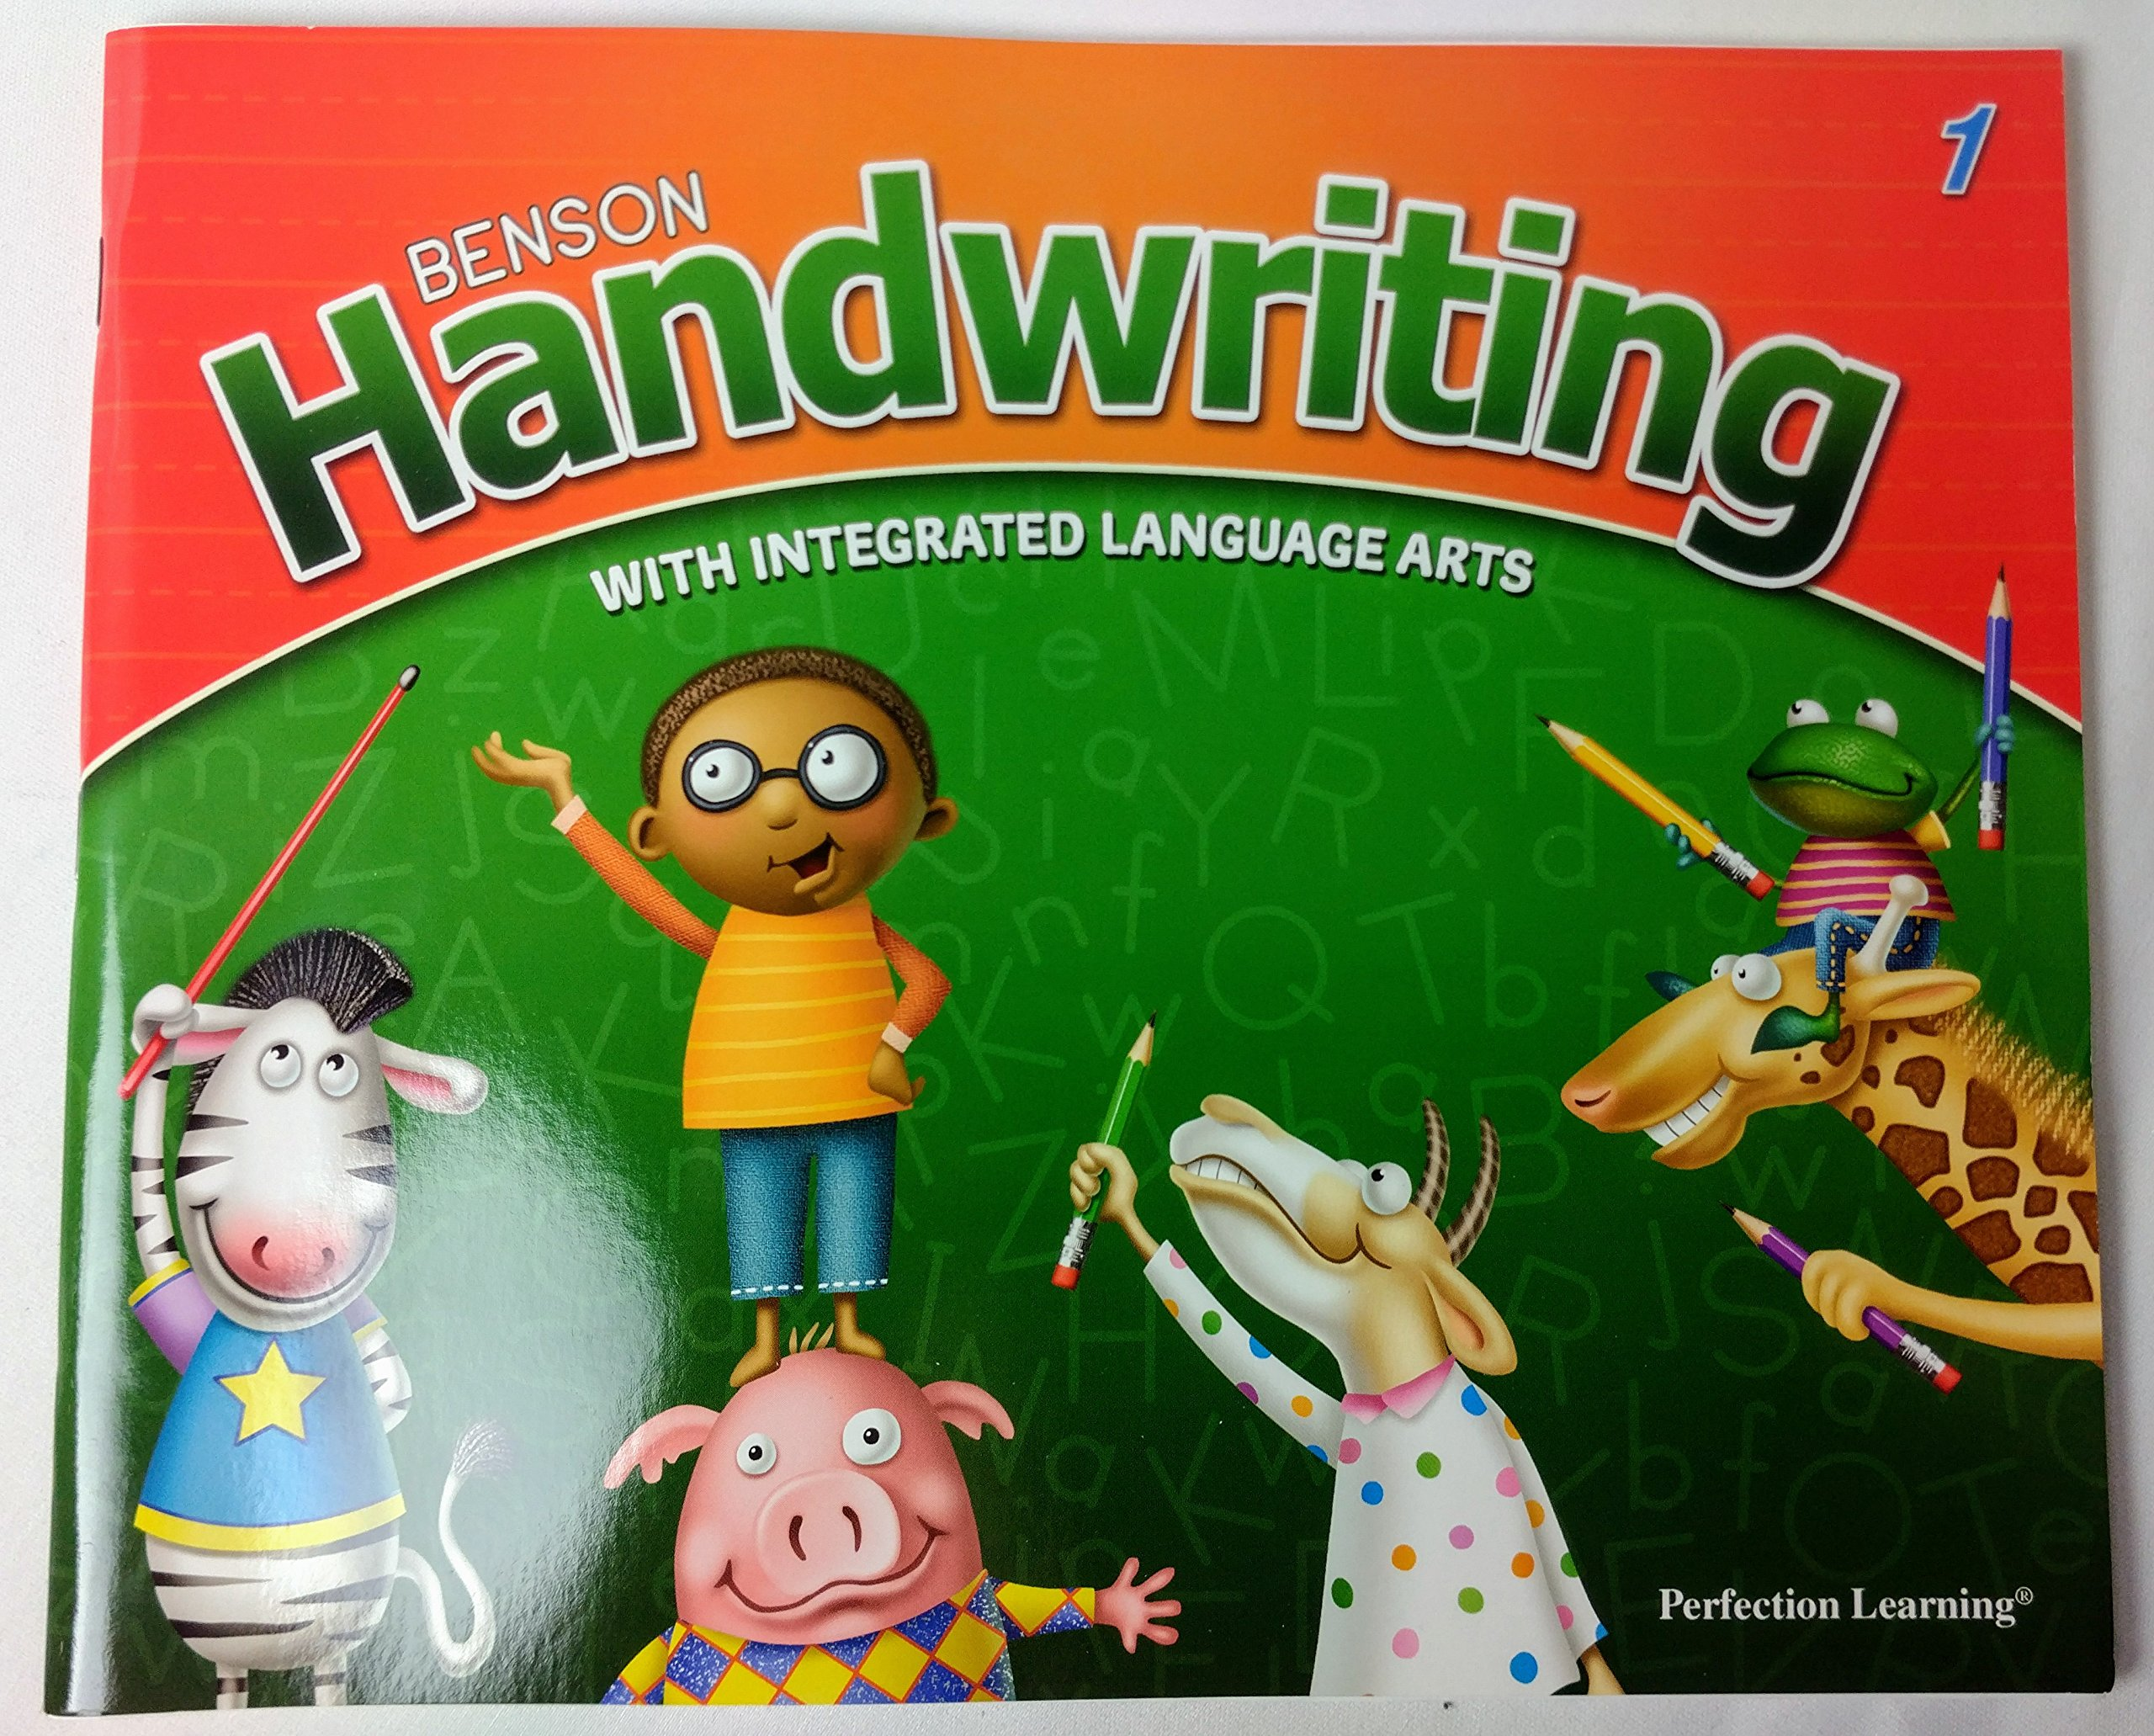 Download Perfection Learning -Benson Handwriting with Intergrated Language Art 1 PDF